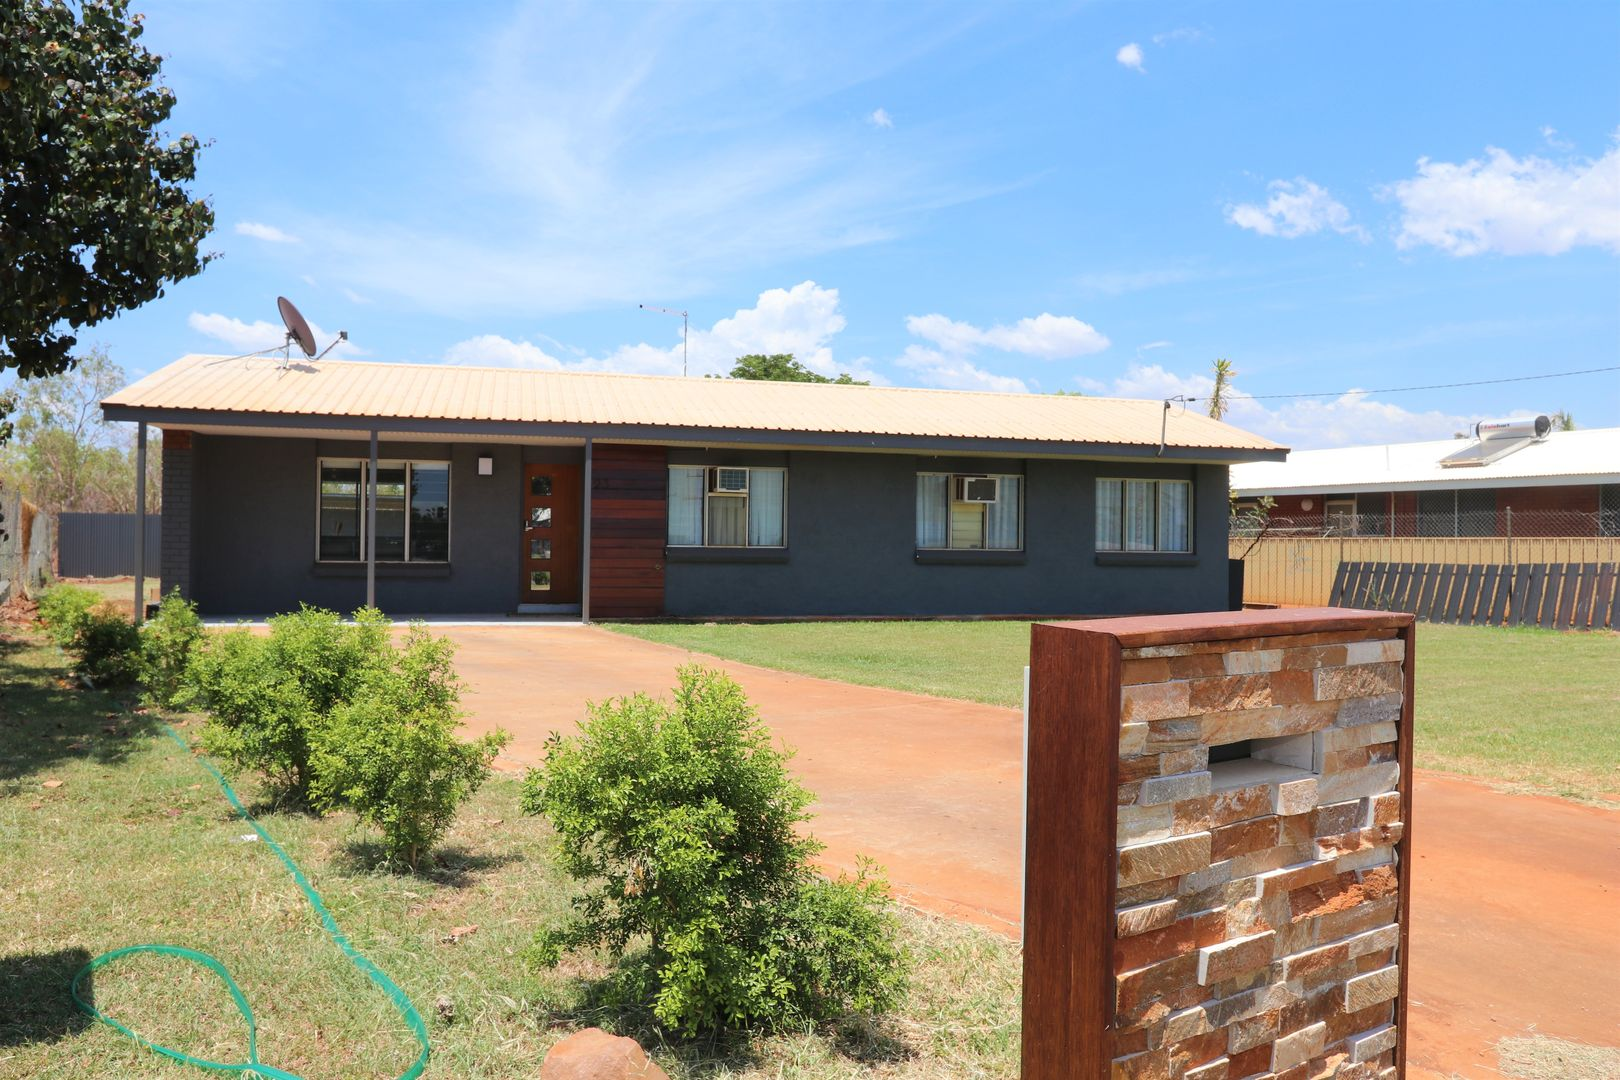 3 bedrooms House in 23 Martin Terrace KATHERINE NT, 0850